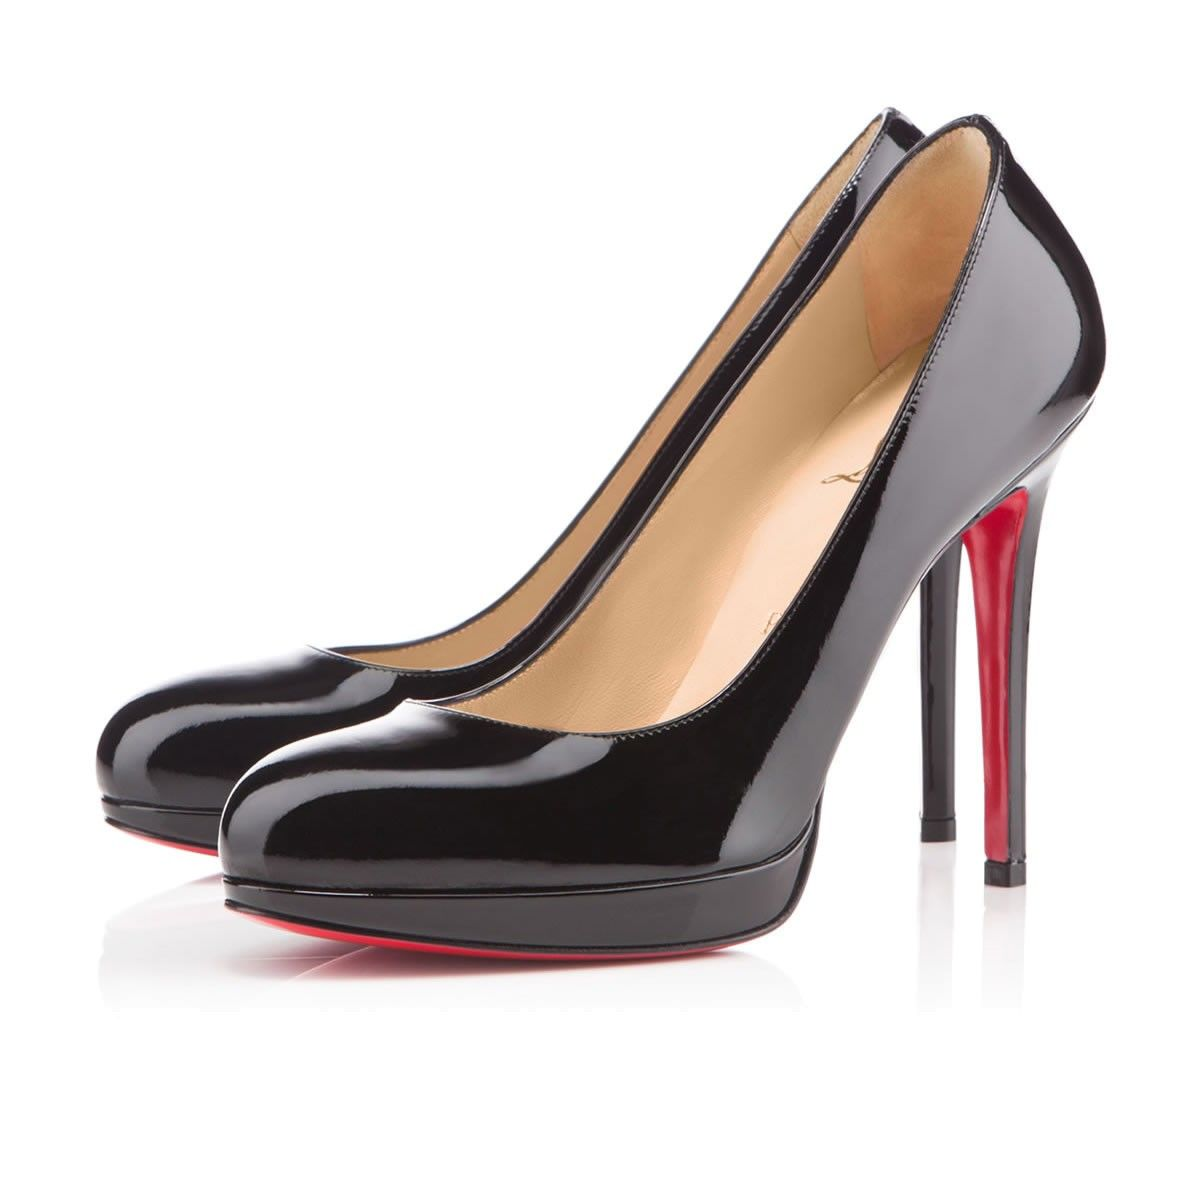 New Simple Pump 120 Black Patent Leather - Women Shoes - Christian Louboutin